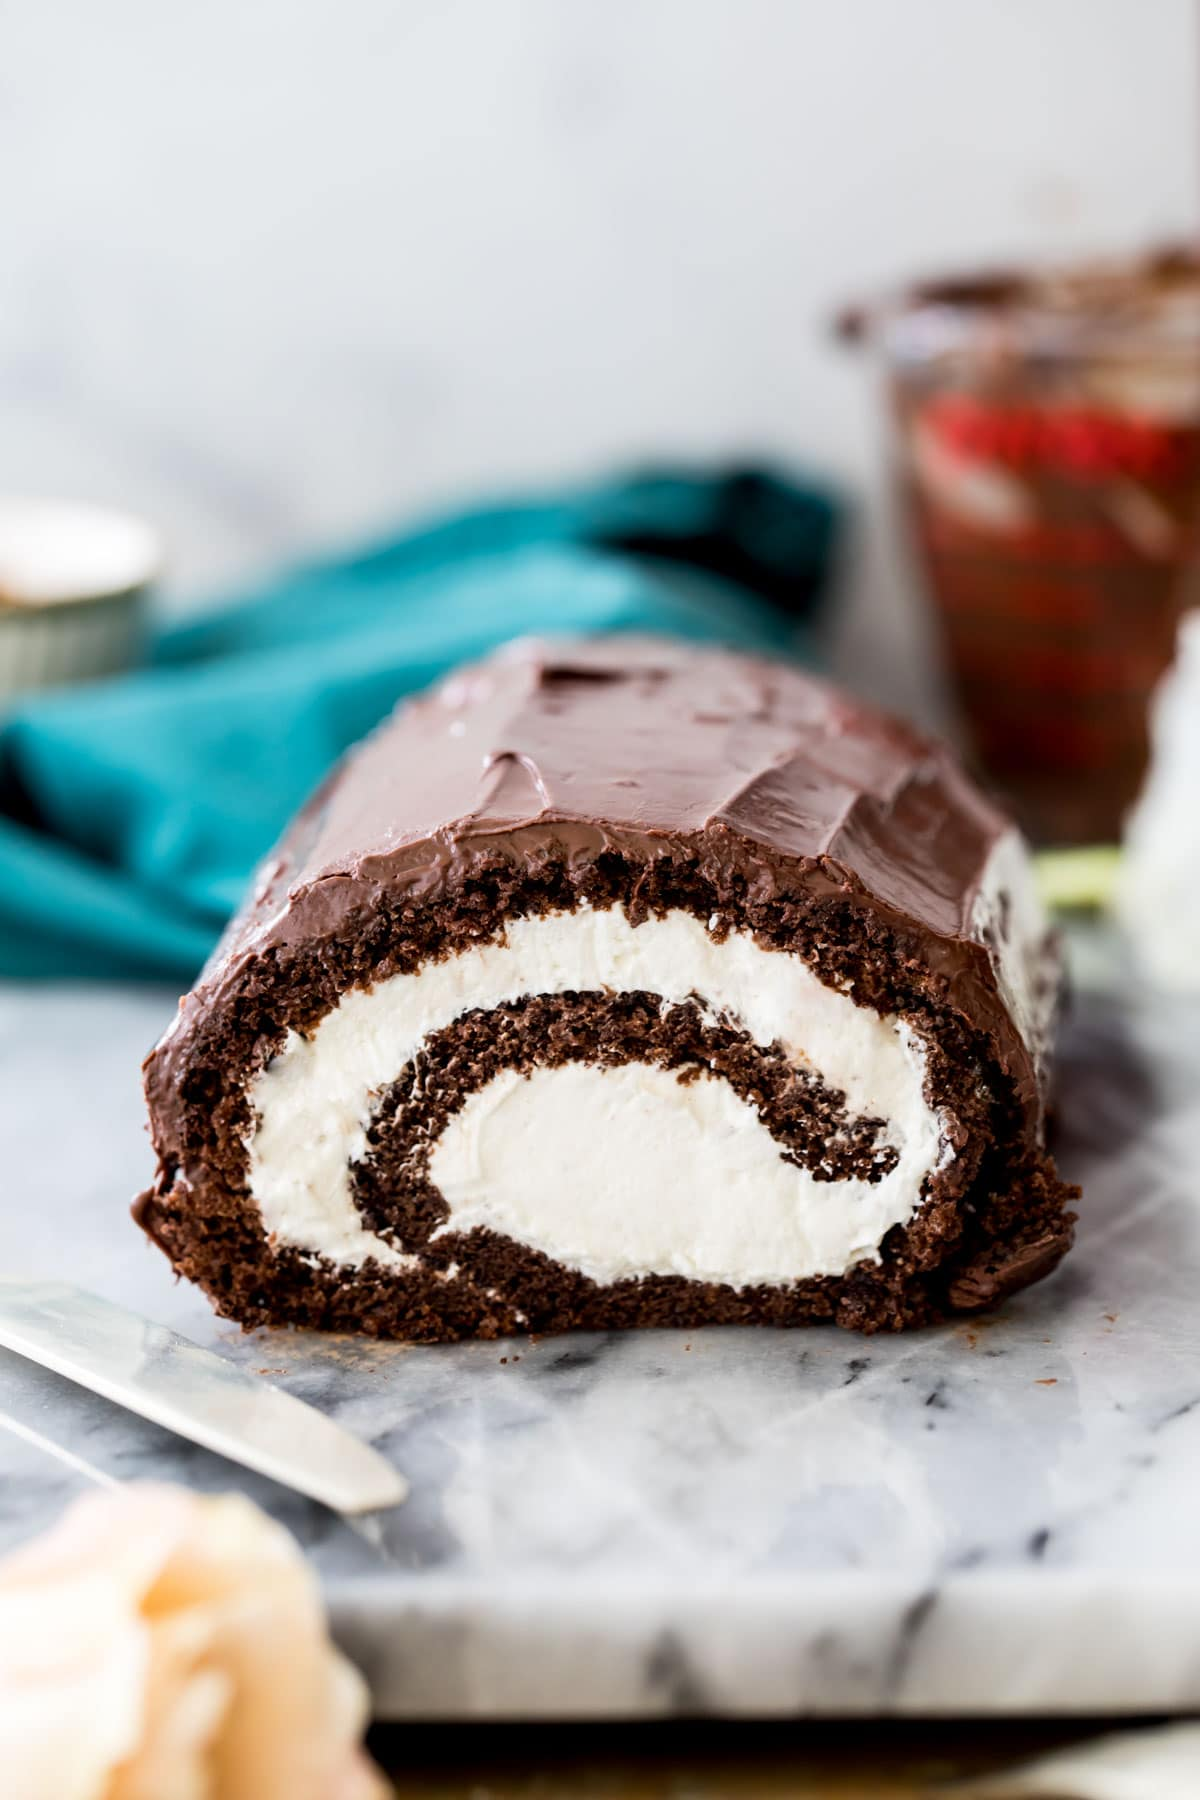 Swiss roll on marble